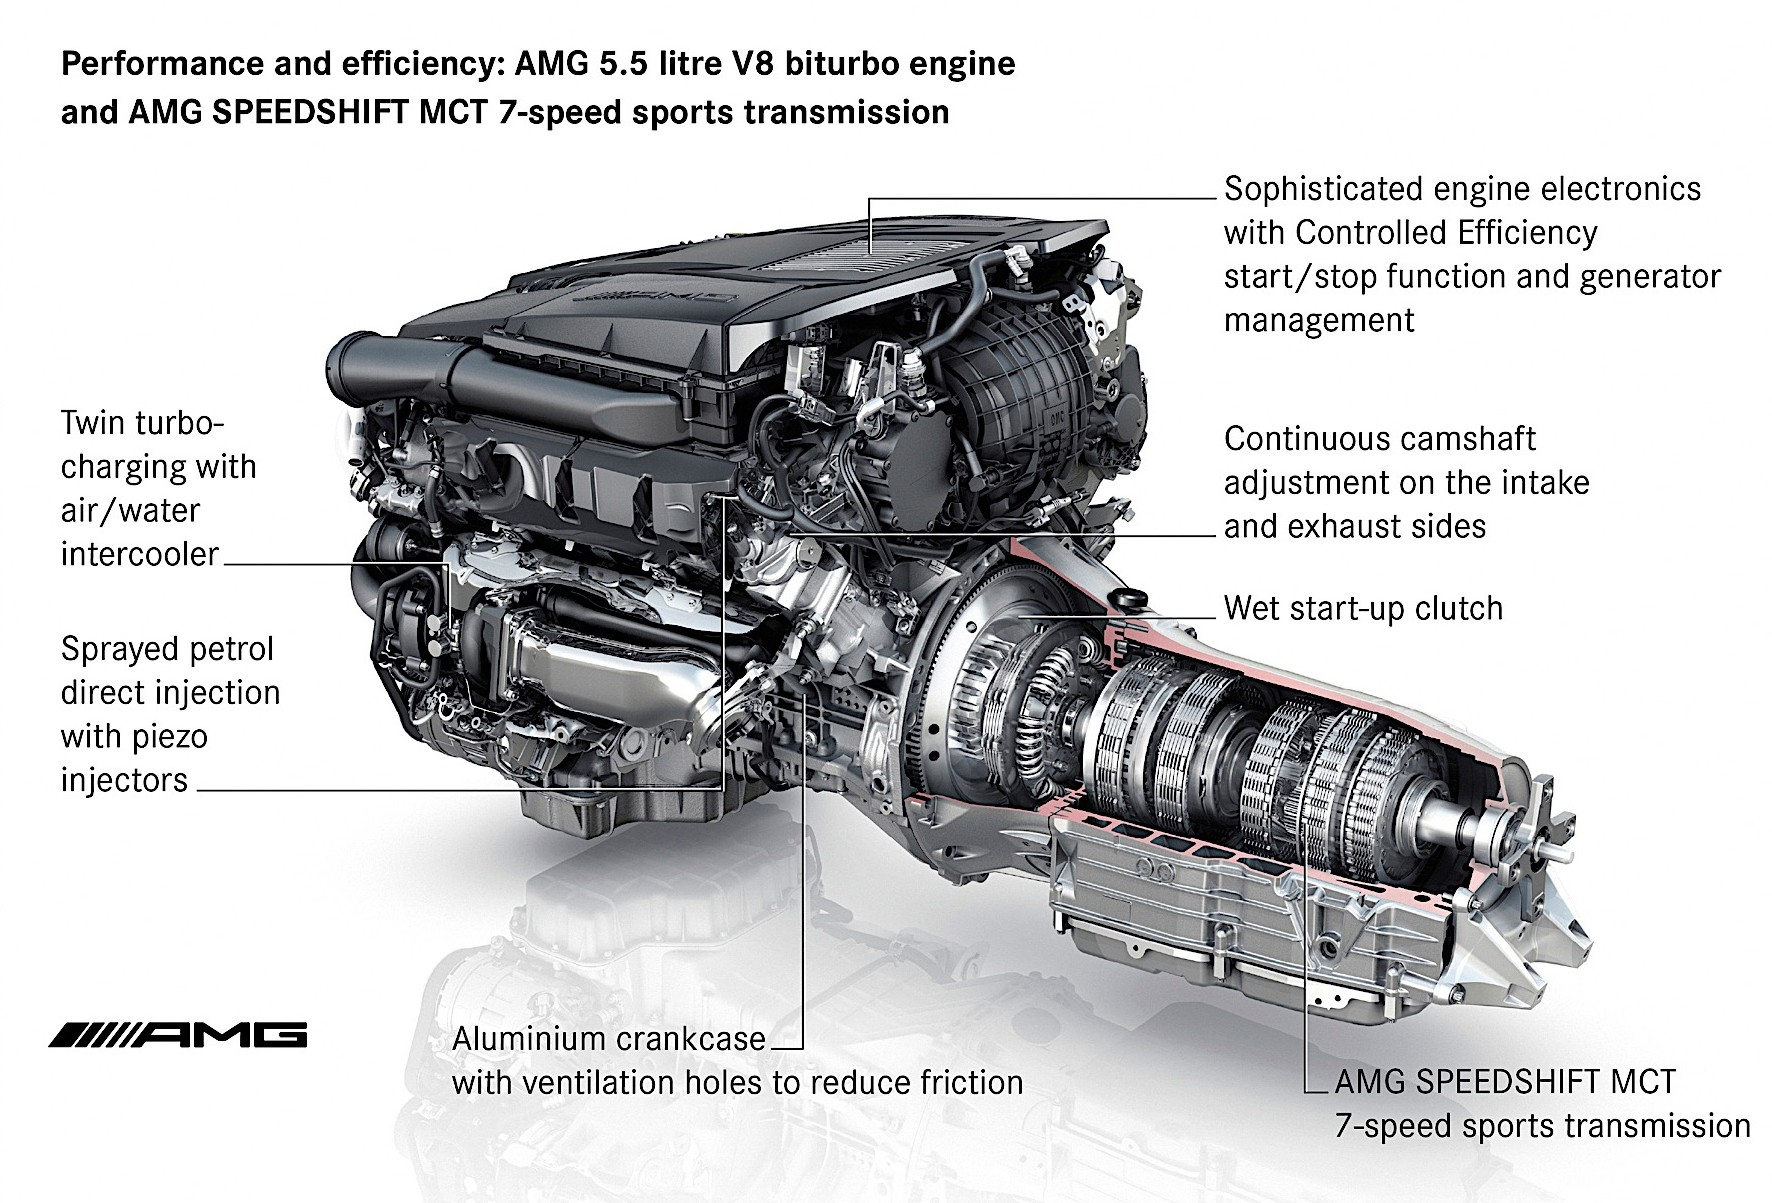 Mercedes Amg S Mct Transmission Explained In Layman S